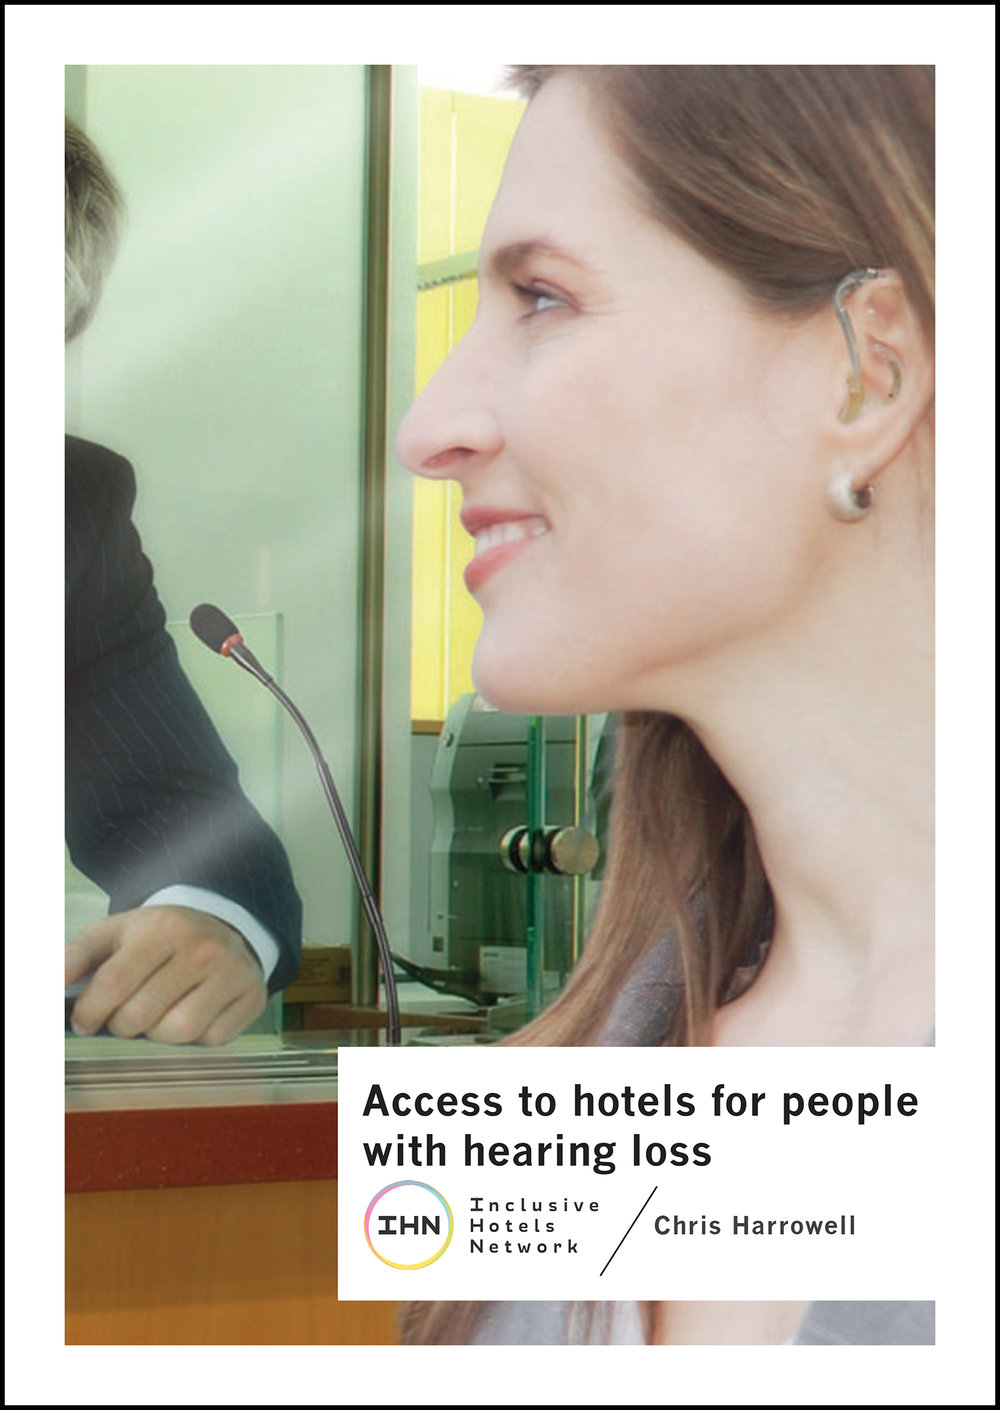 Cover of Access to Hotels for People with Hearing Loss document with IHN logo.